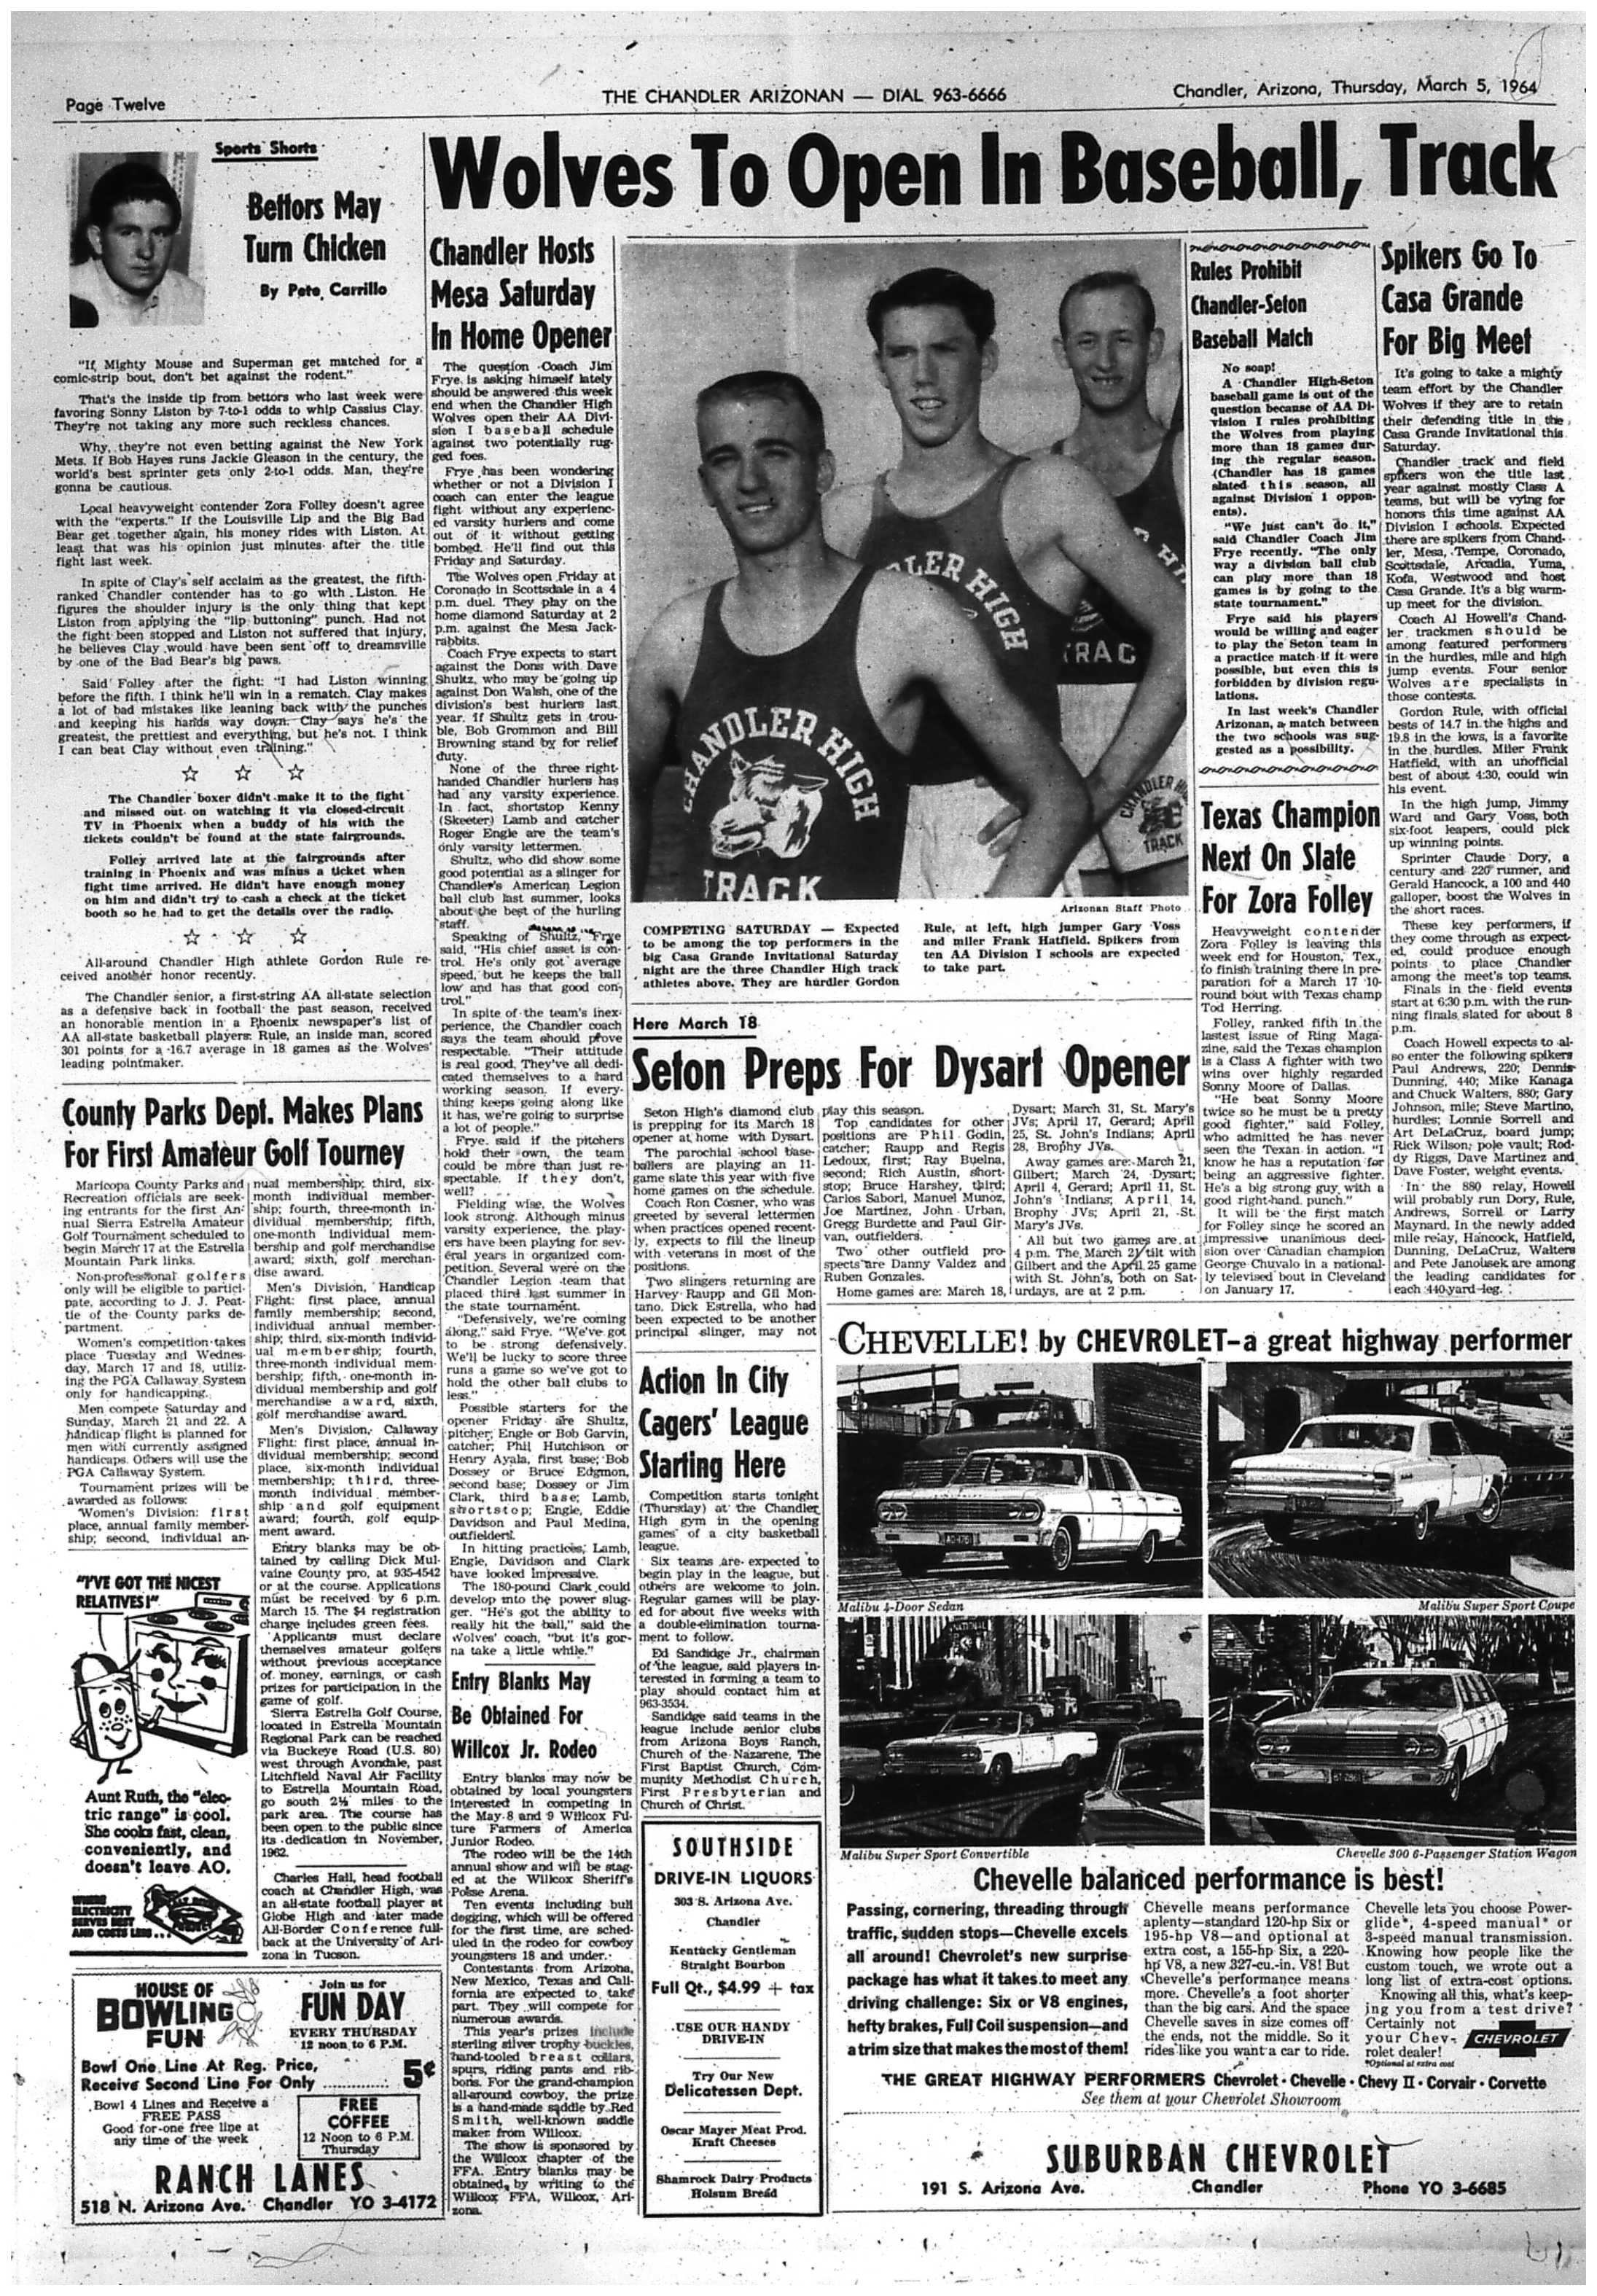 03-05-1964 - Page 12 .jpg